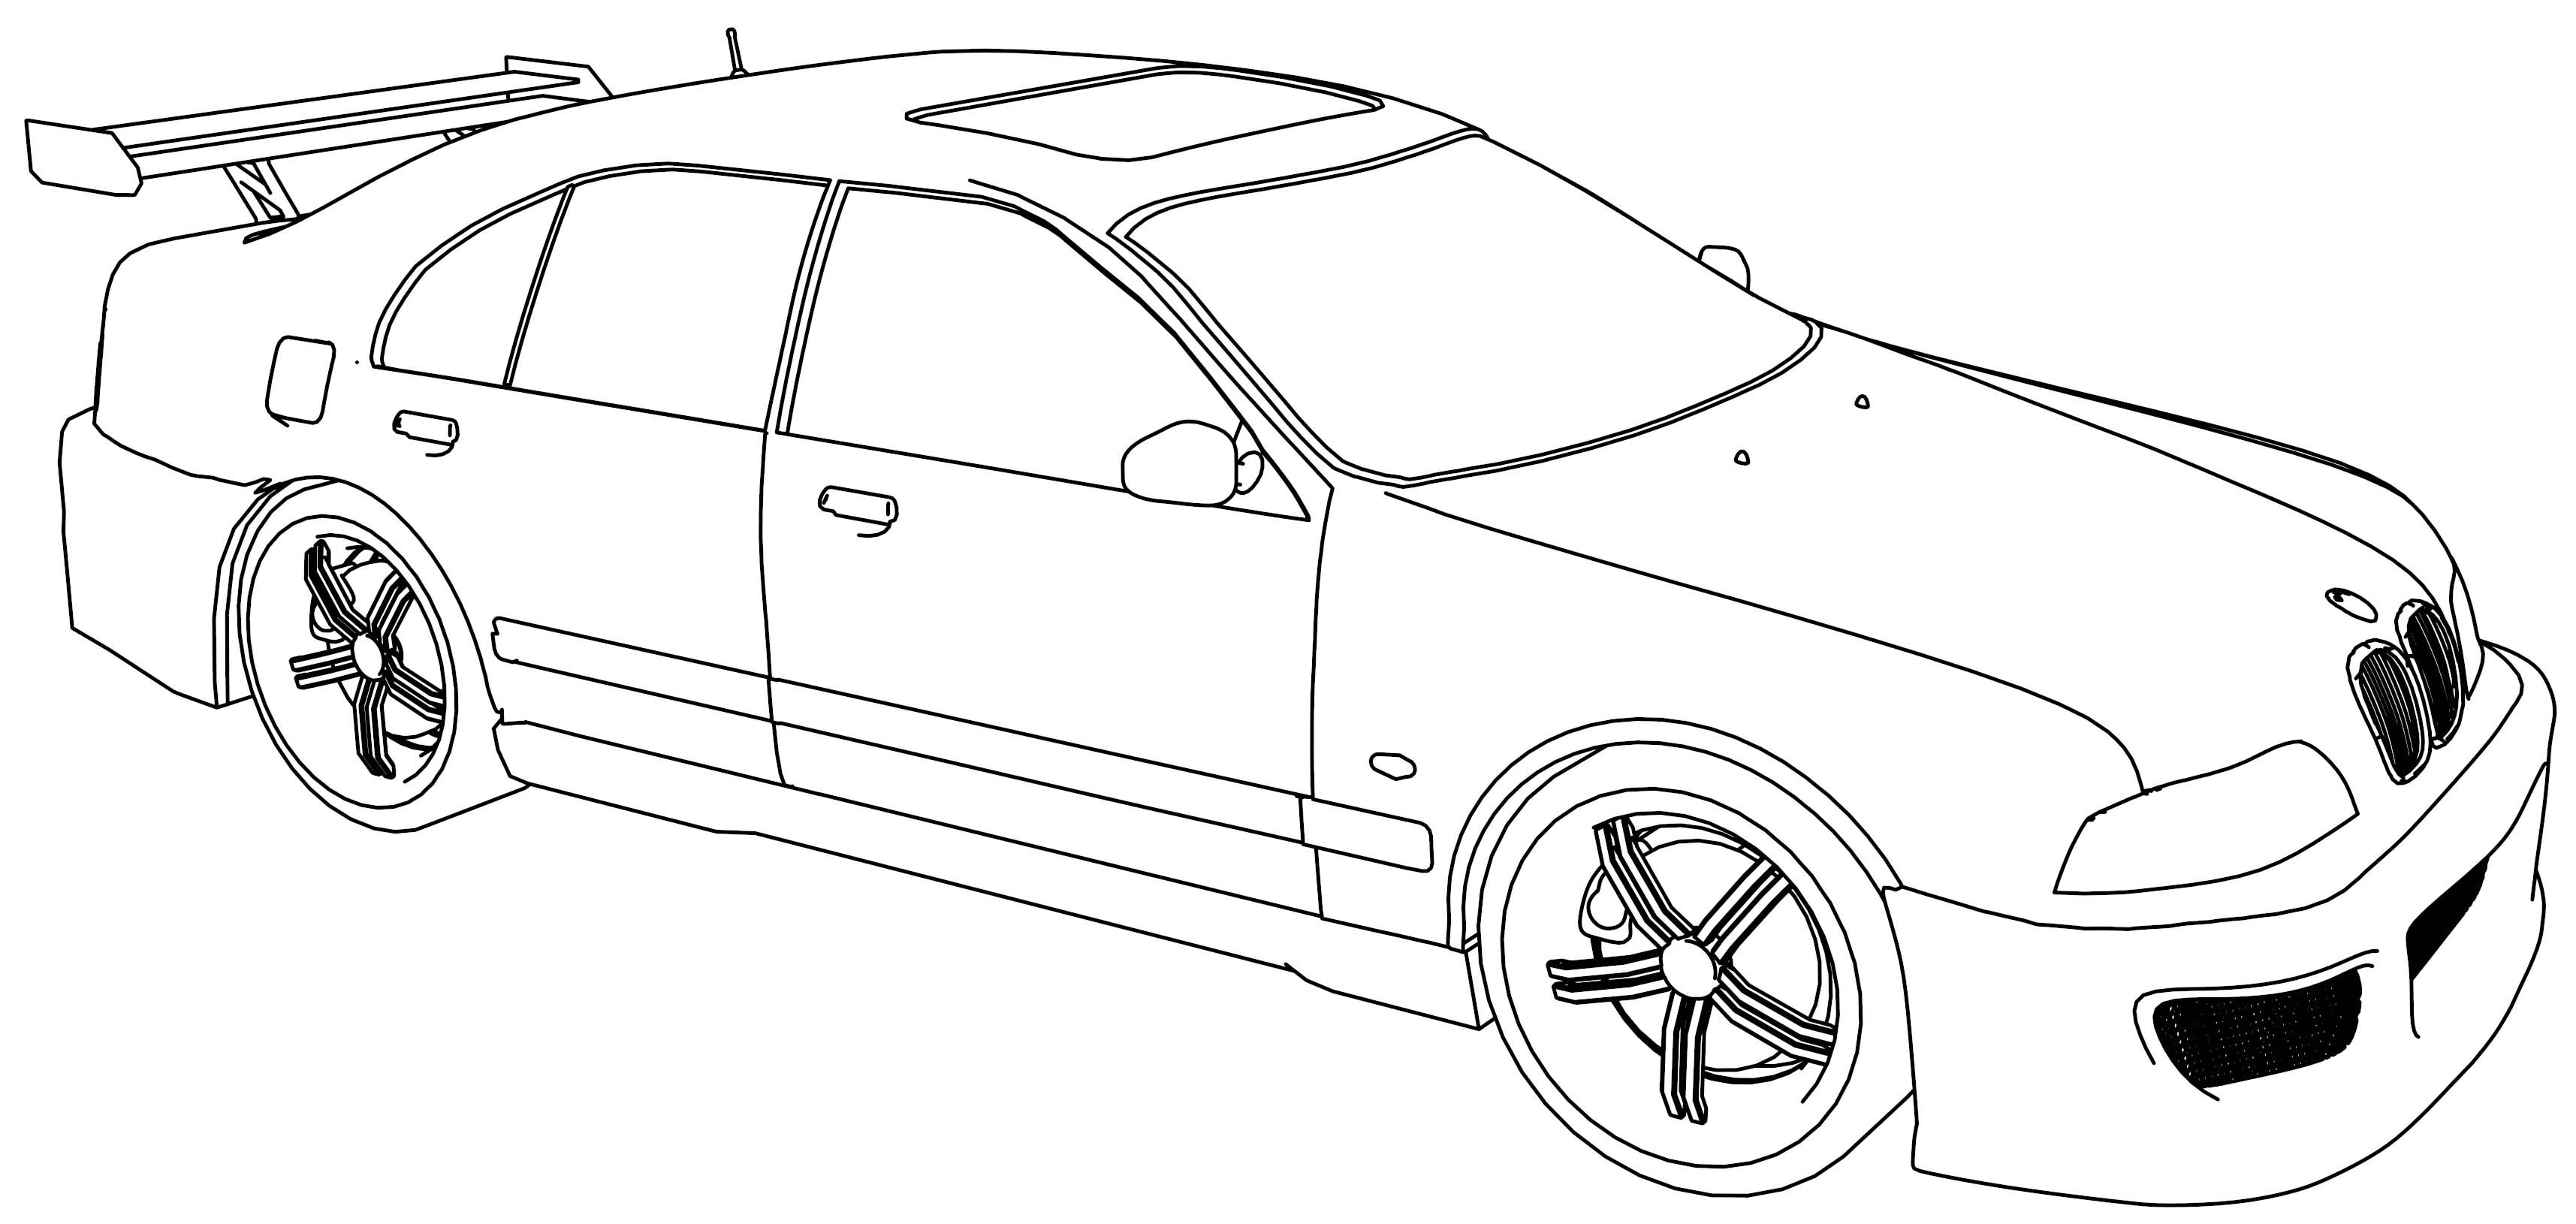 Car Tree Road Coloring Page also Volvo S60 Interior Dimensions as well Dontpickyournosewhiledriving furthermore 12 Reasons Indias Favorite Car Still Ambassador further Royalty Free Stock Image High Speed Speedometer D Image View Image31183916. on driving car